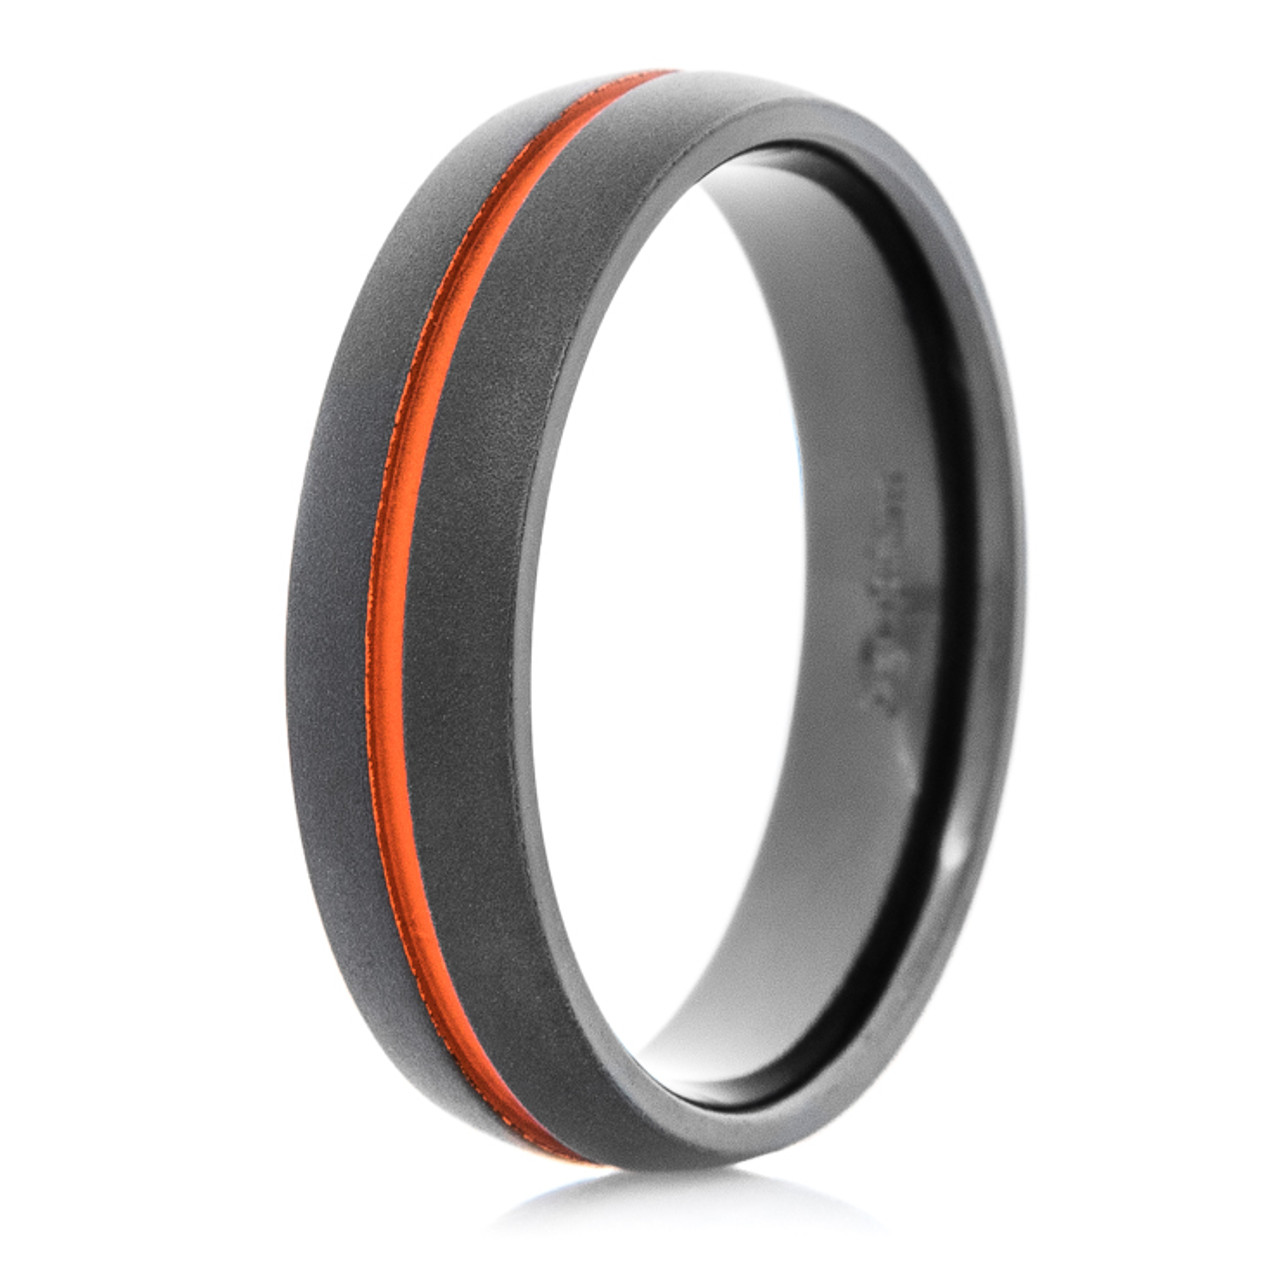 Black Wedding Bands.Men S Flat Black Wedding Band With Orange Inlay